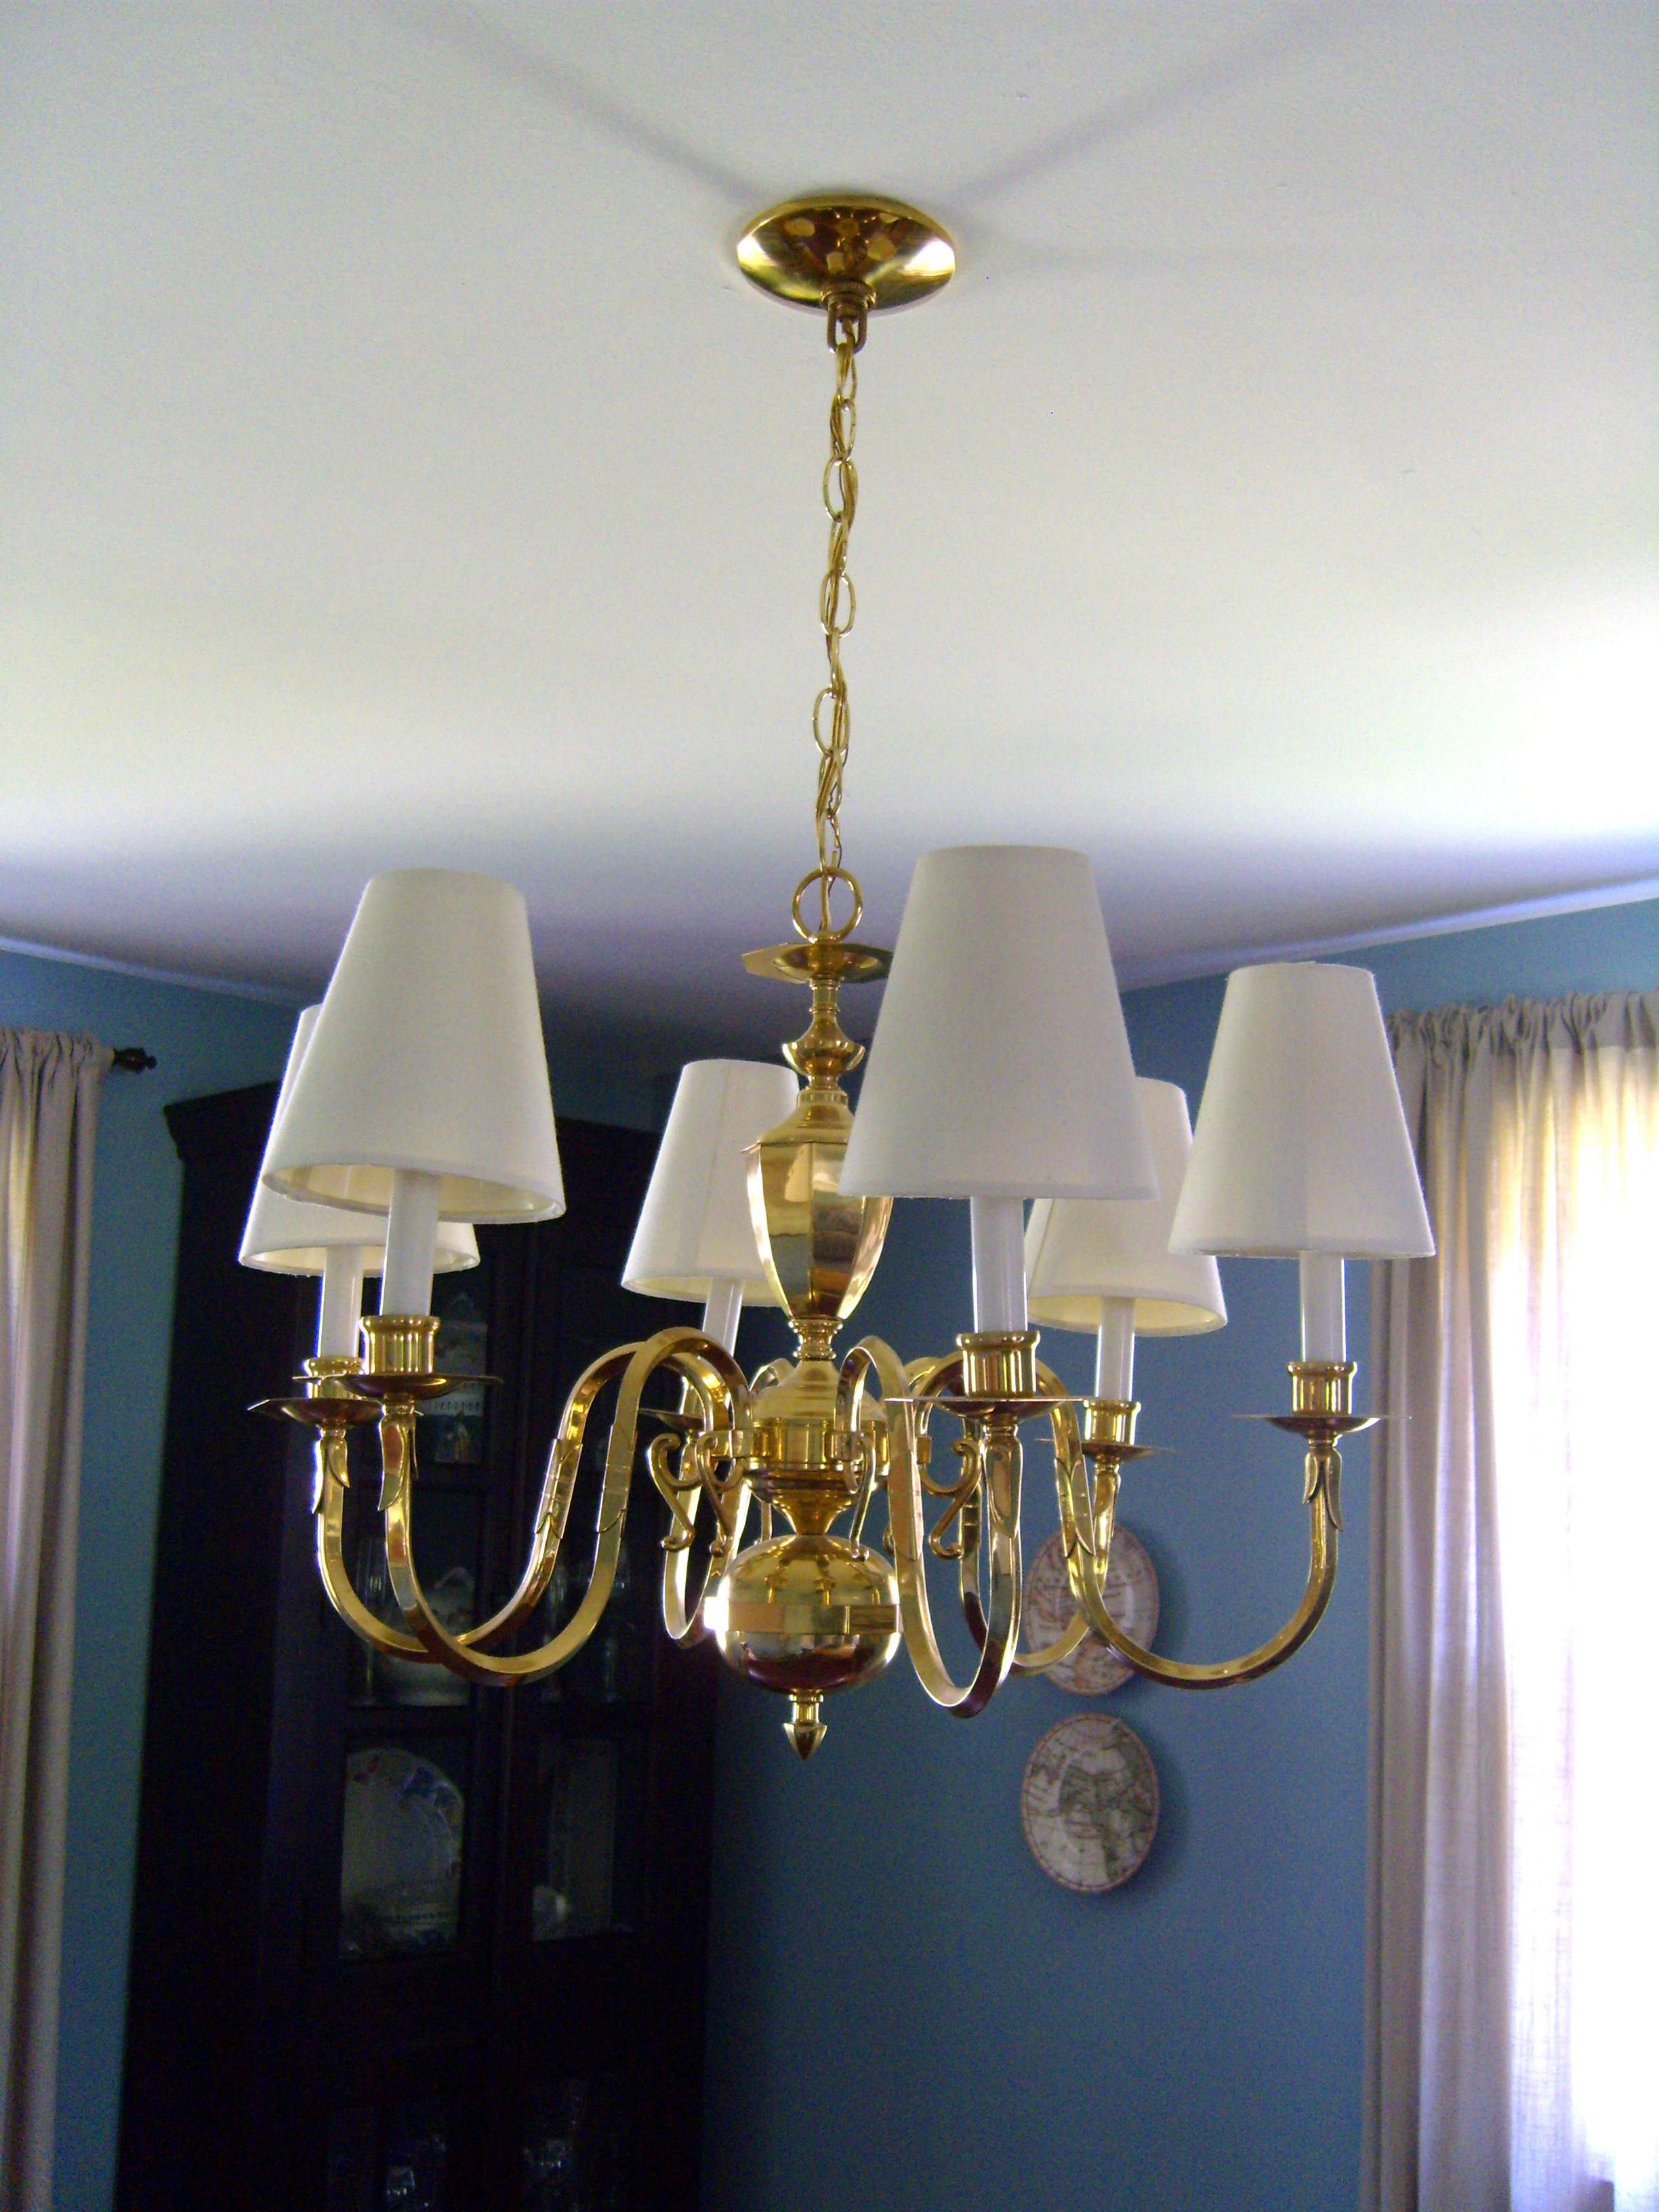 chandelier lamp shades candelabra not small lamp shades for chandeliers included listed interest  measure style DSBPEXC